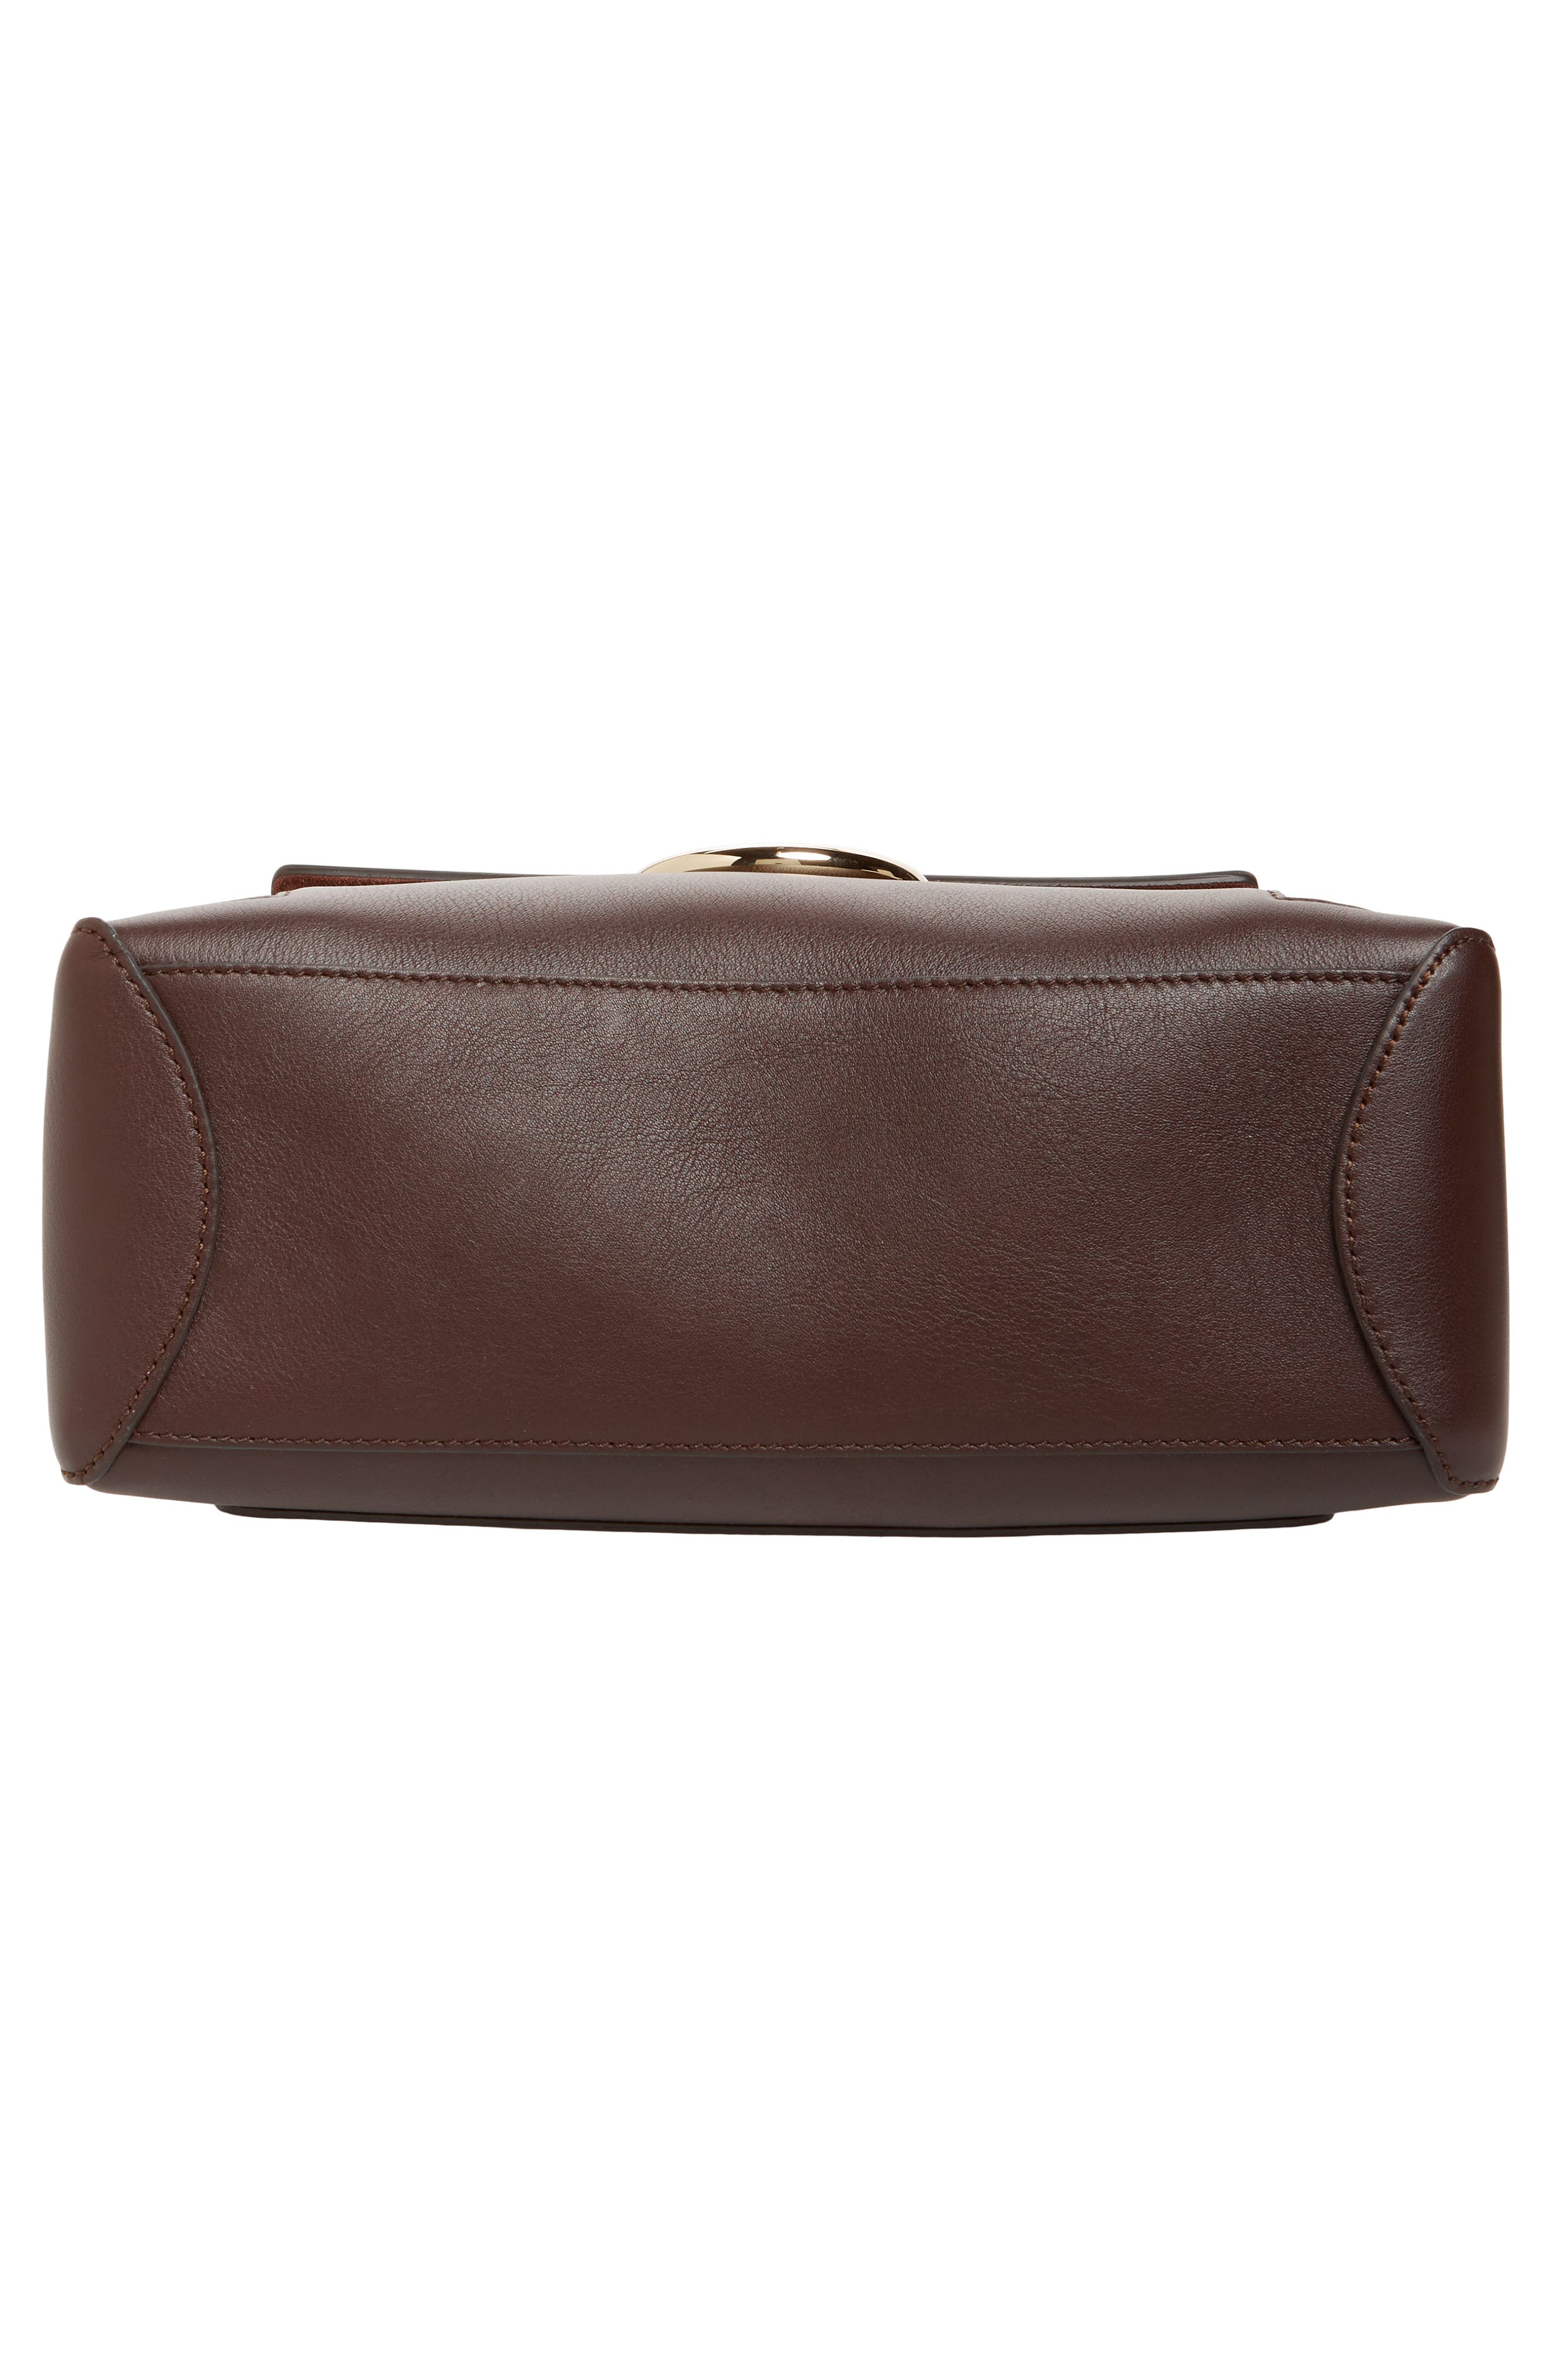 Small Faye Day Leather Shoulder Bag,                             Alternate thumbnail 6, color,                             CARBON BROWN